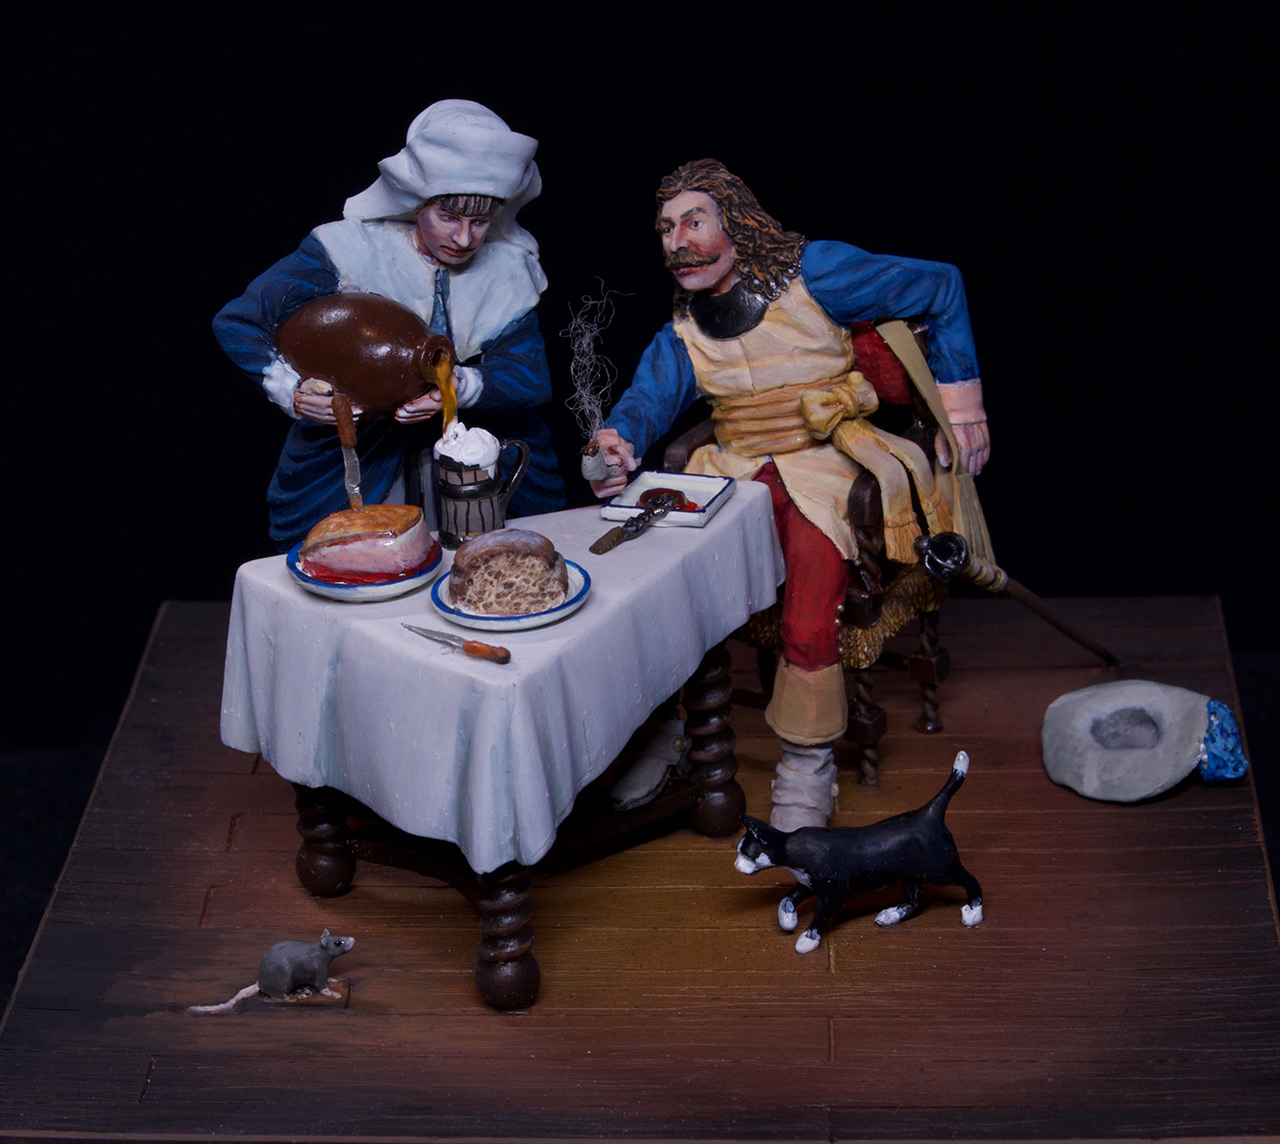 Dioramas and Vignettes: Waitress and cavalier, photo #3